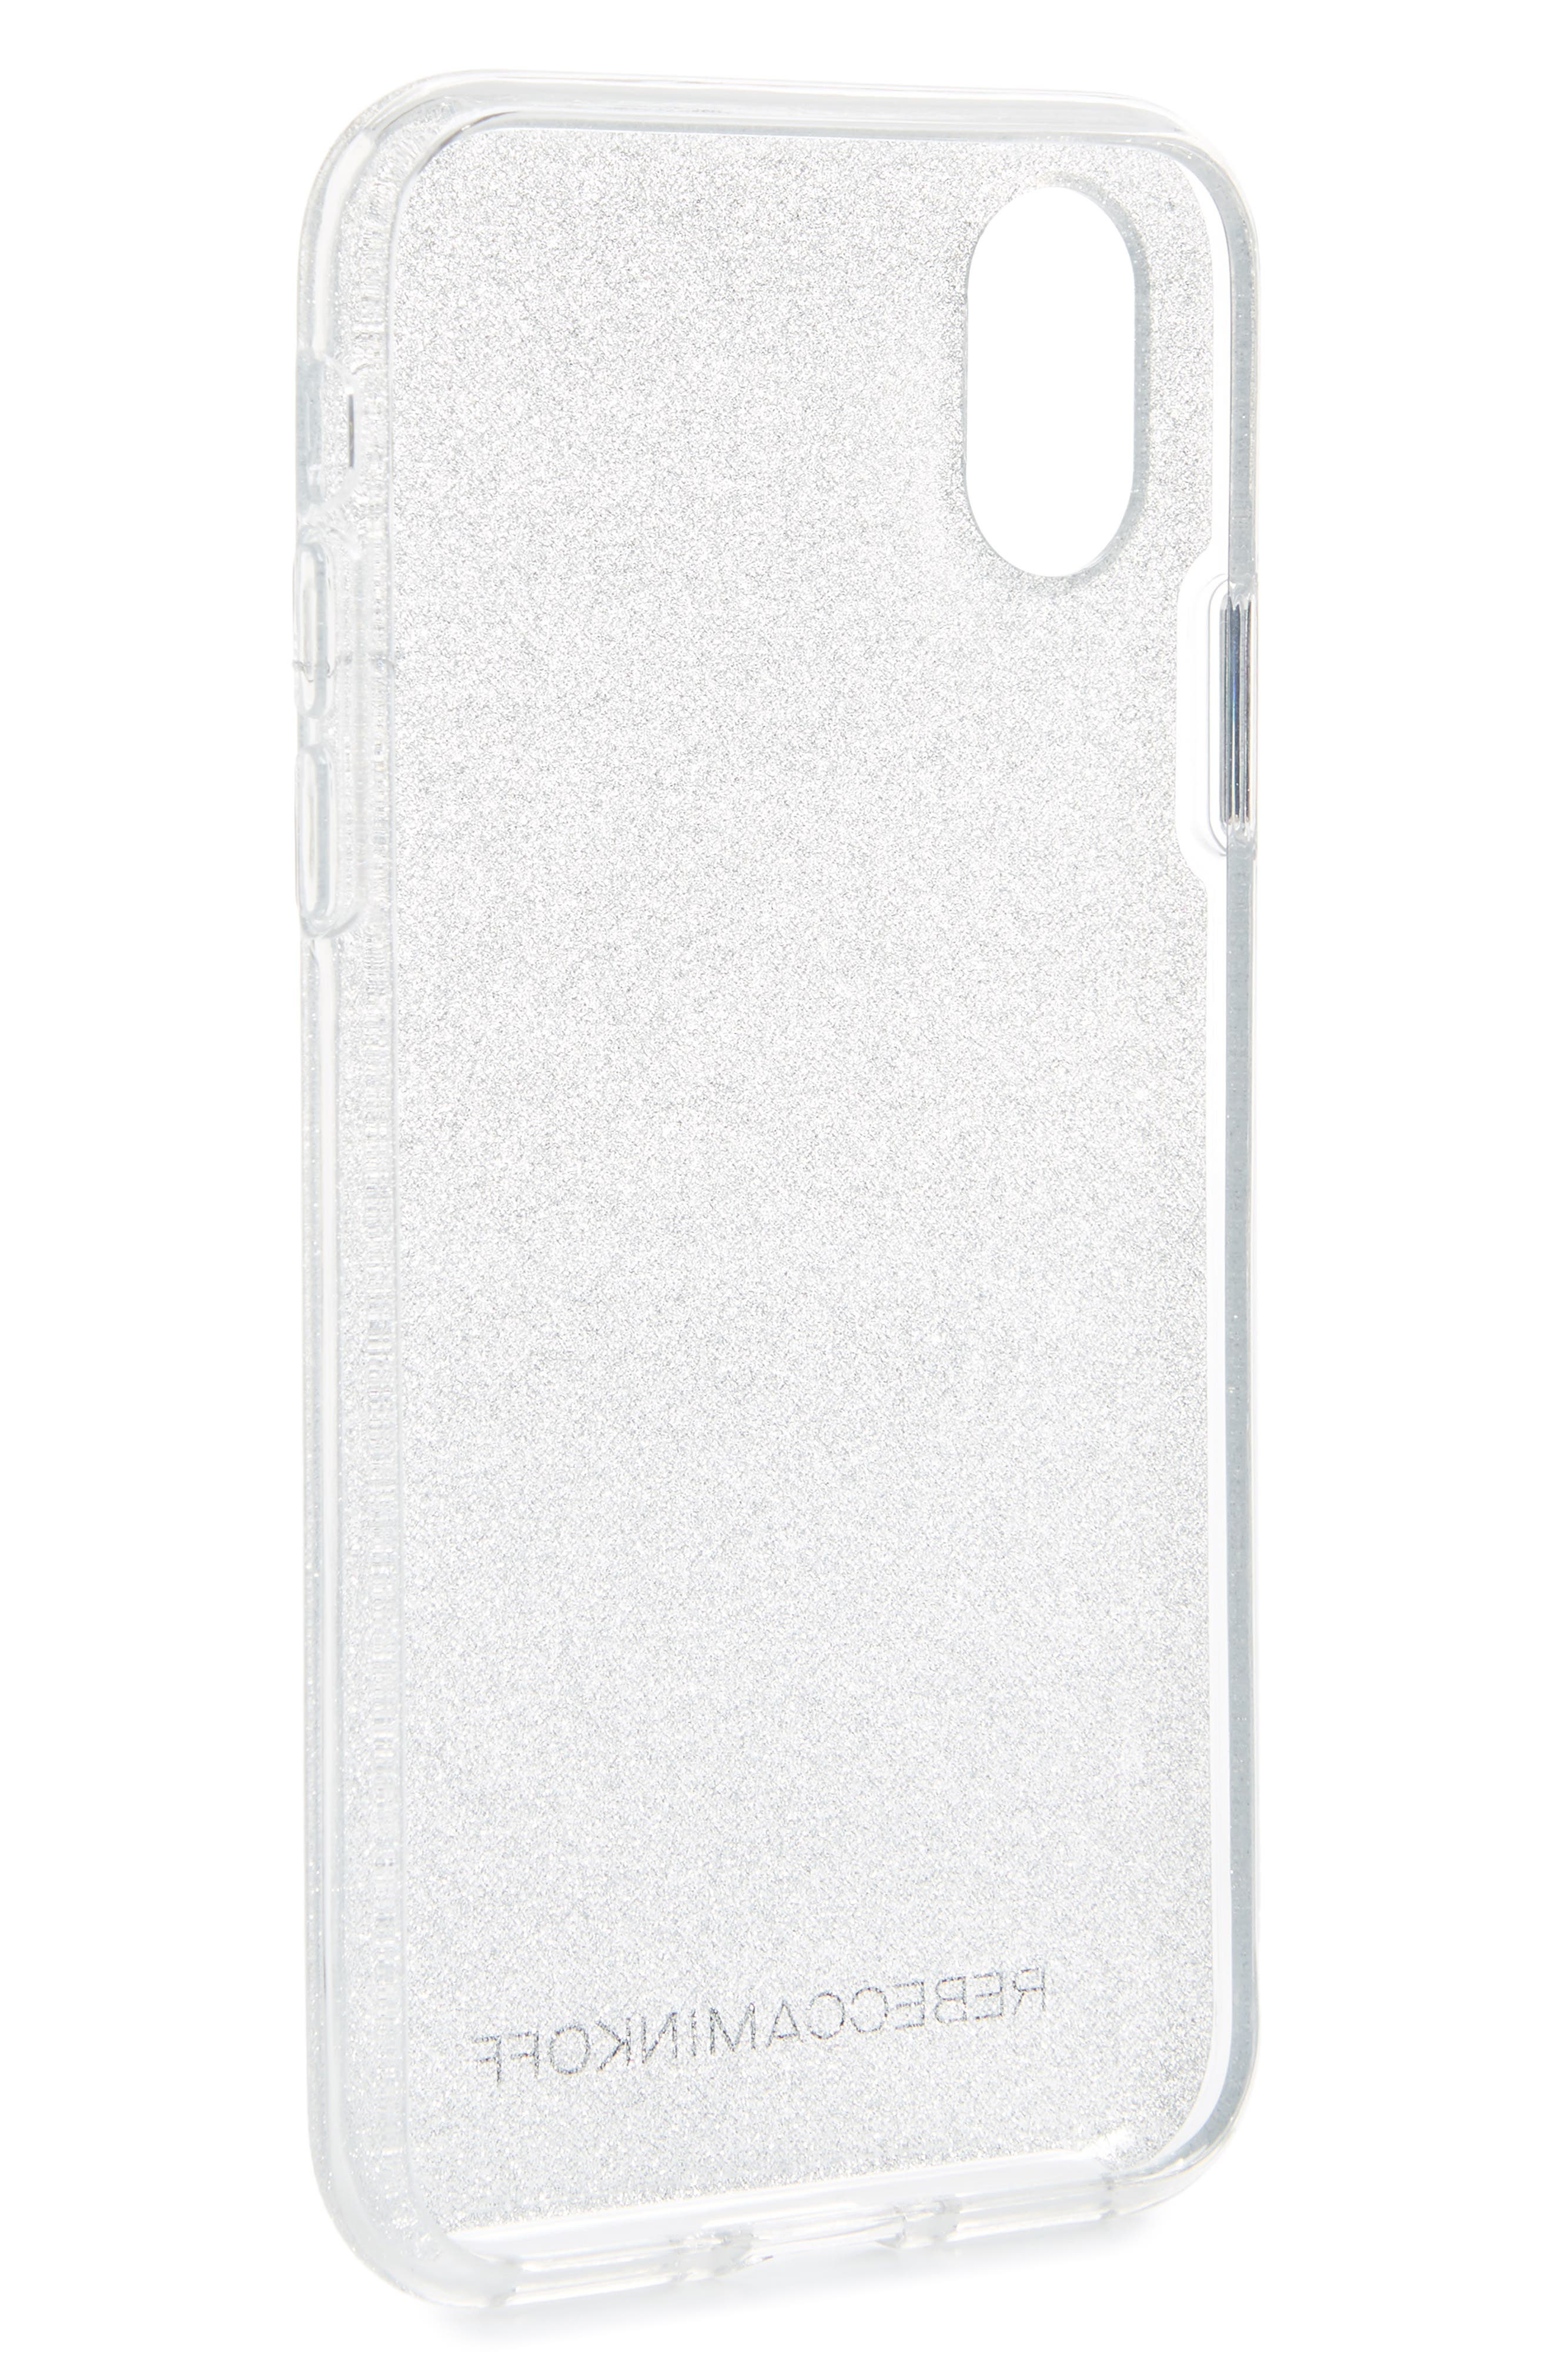 Be More Transparent iPhone X/Xs Case,                             Alternate thumbnail 2, color,                             SILVER GLITTER